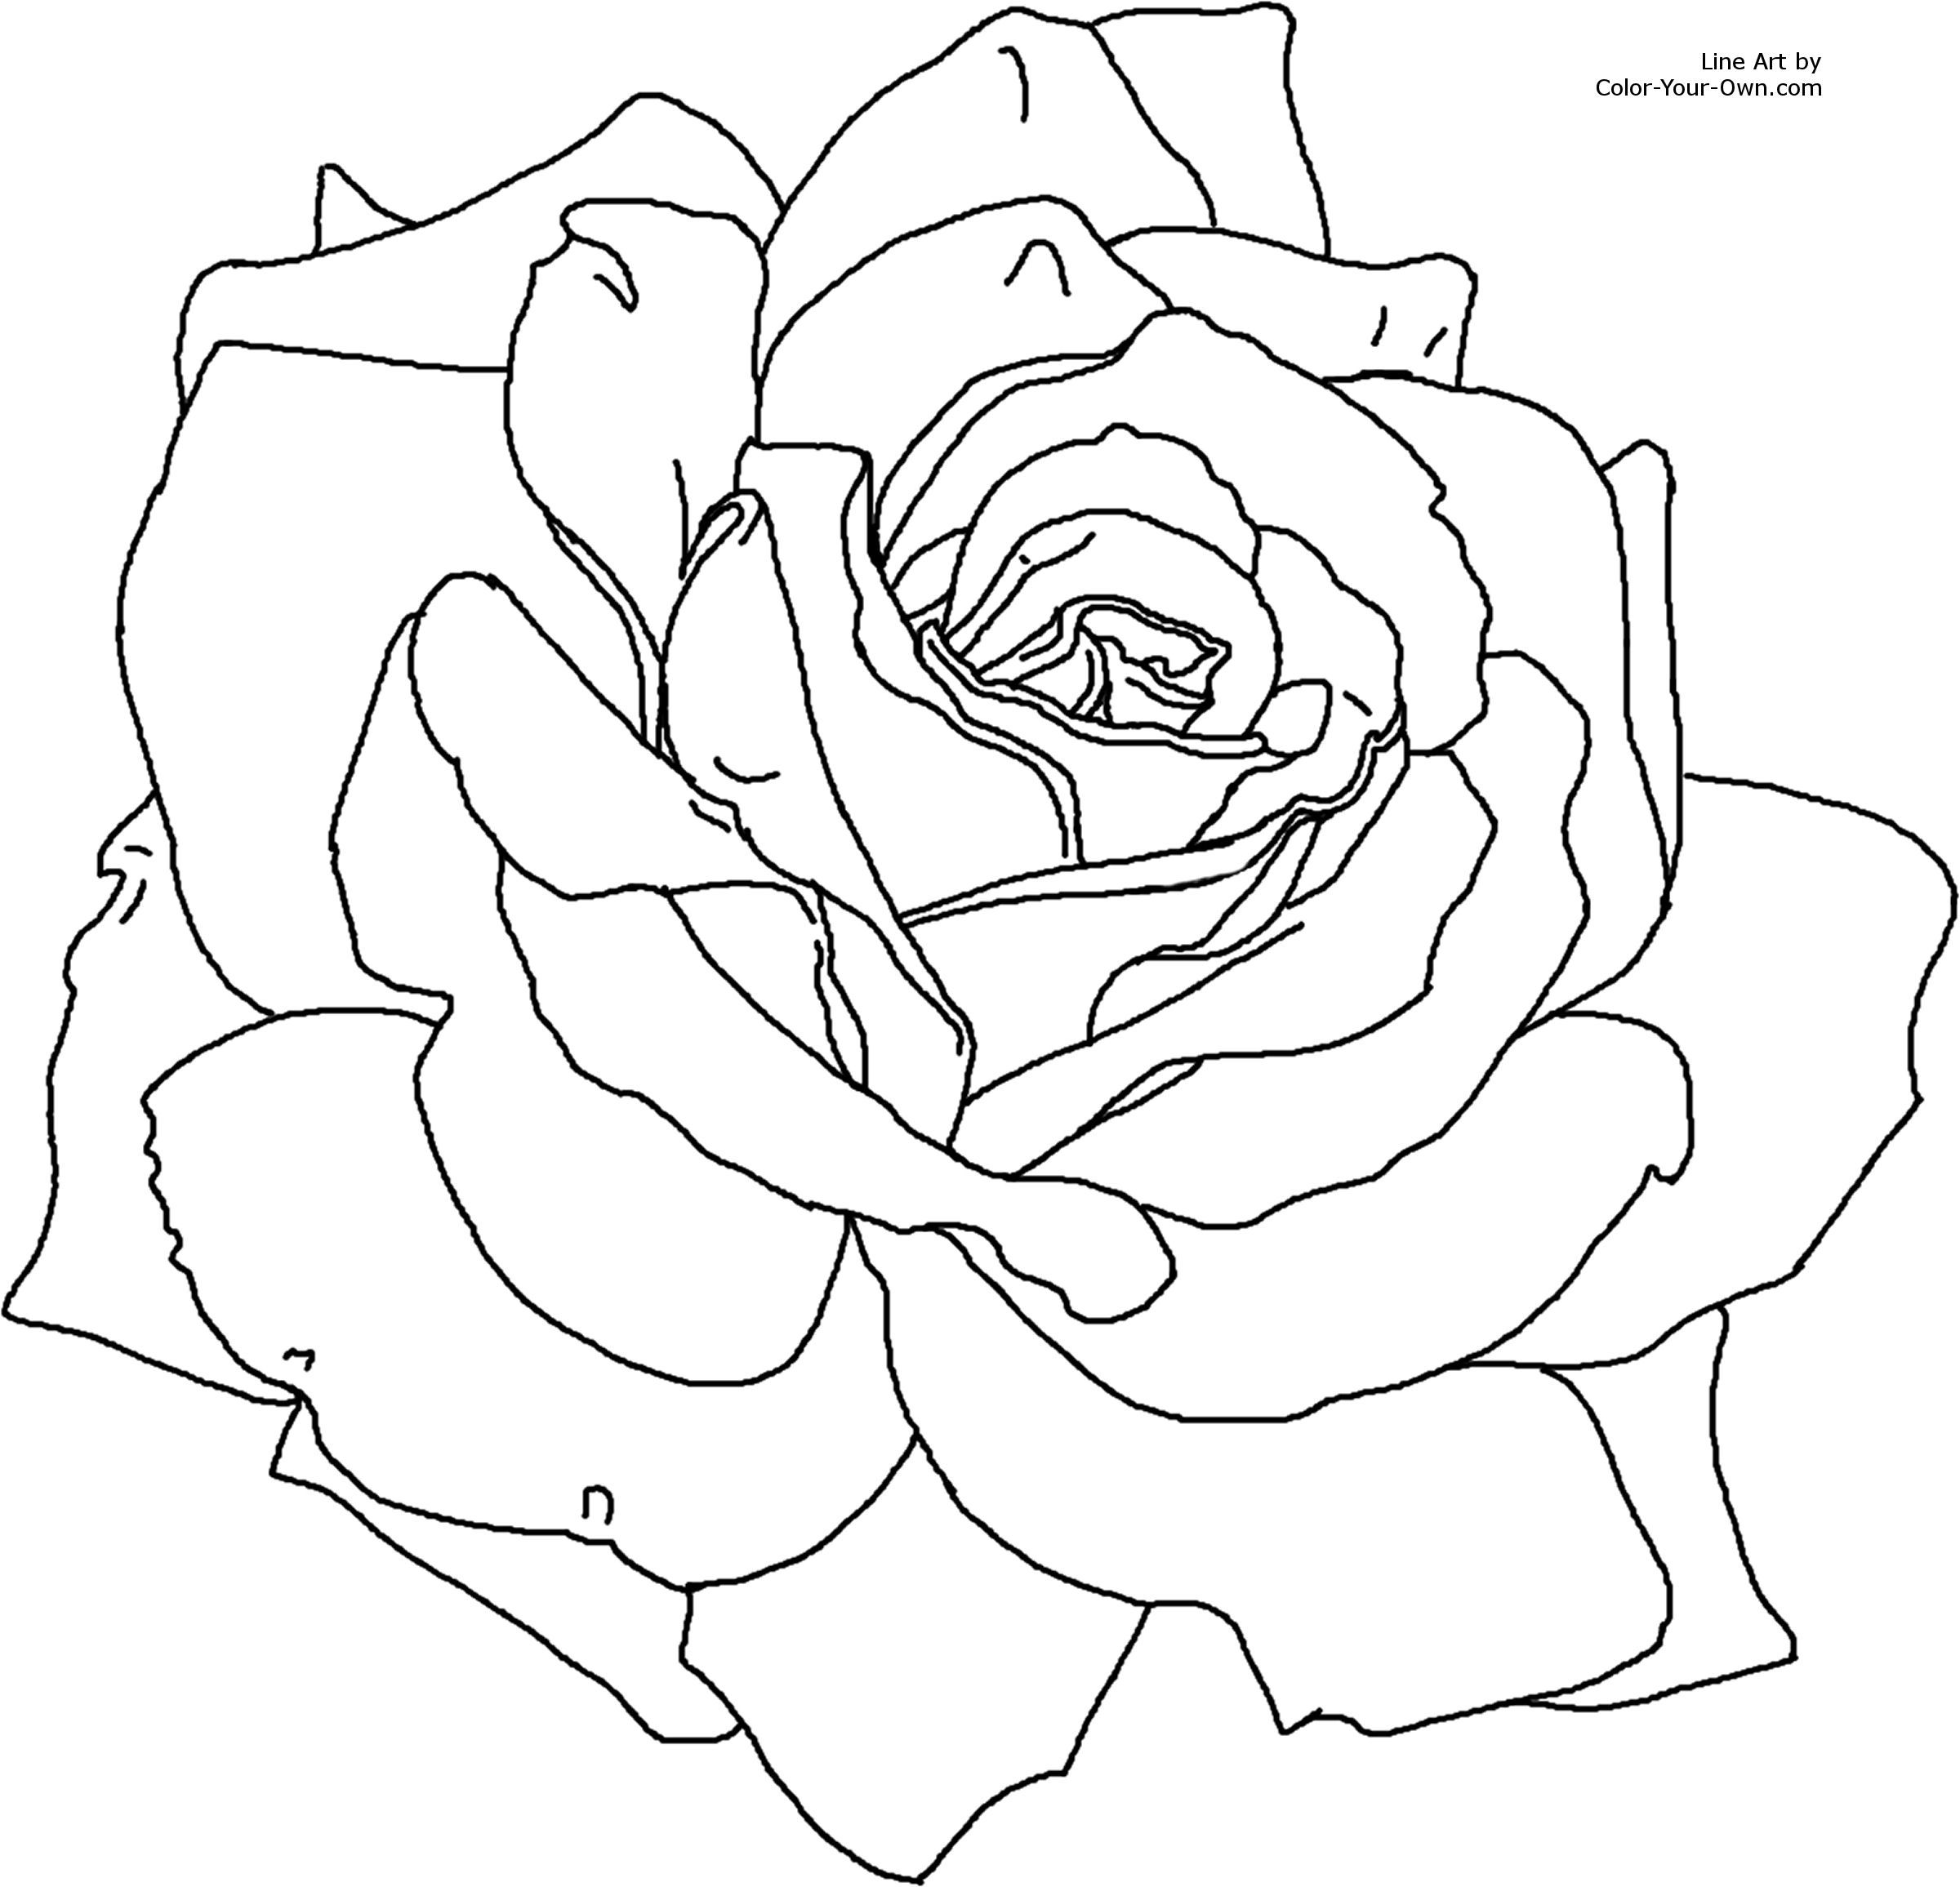 flower page printable coloring sheets for the 85 x 11 printable size click here